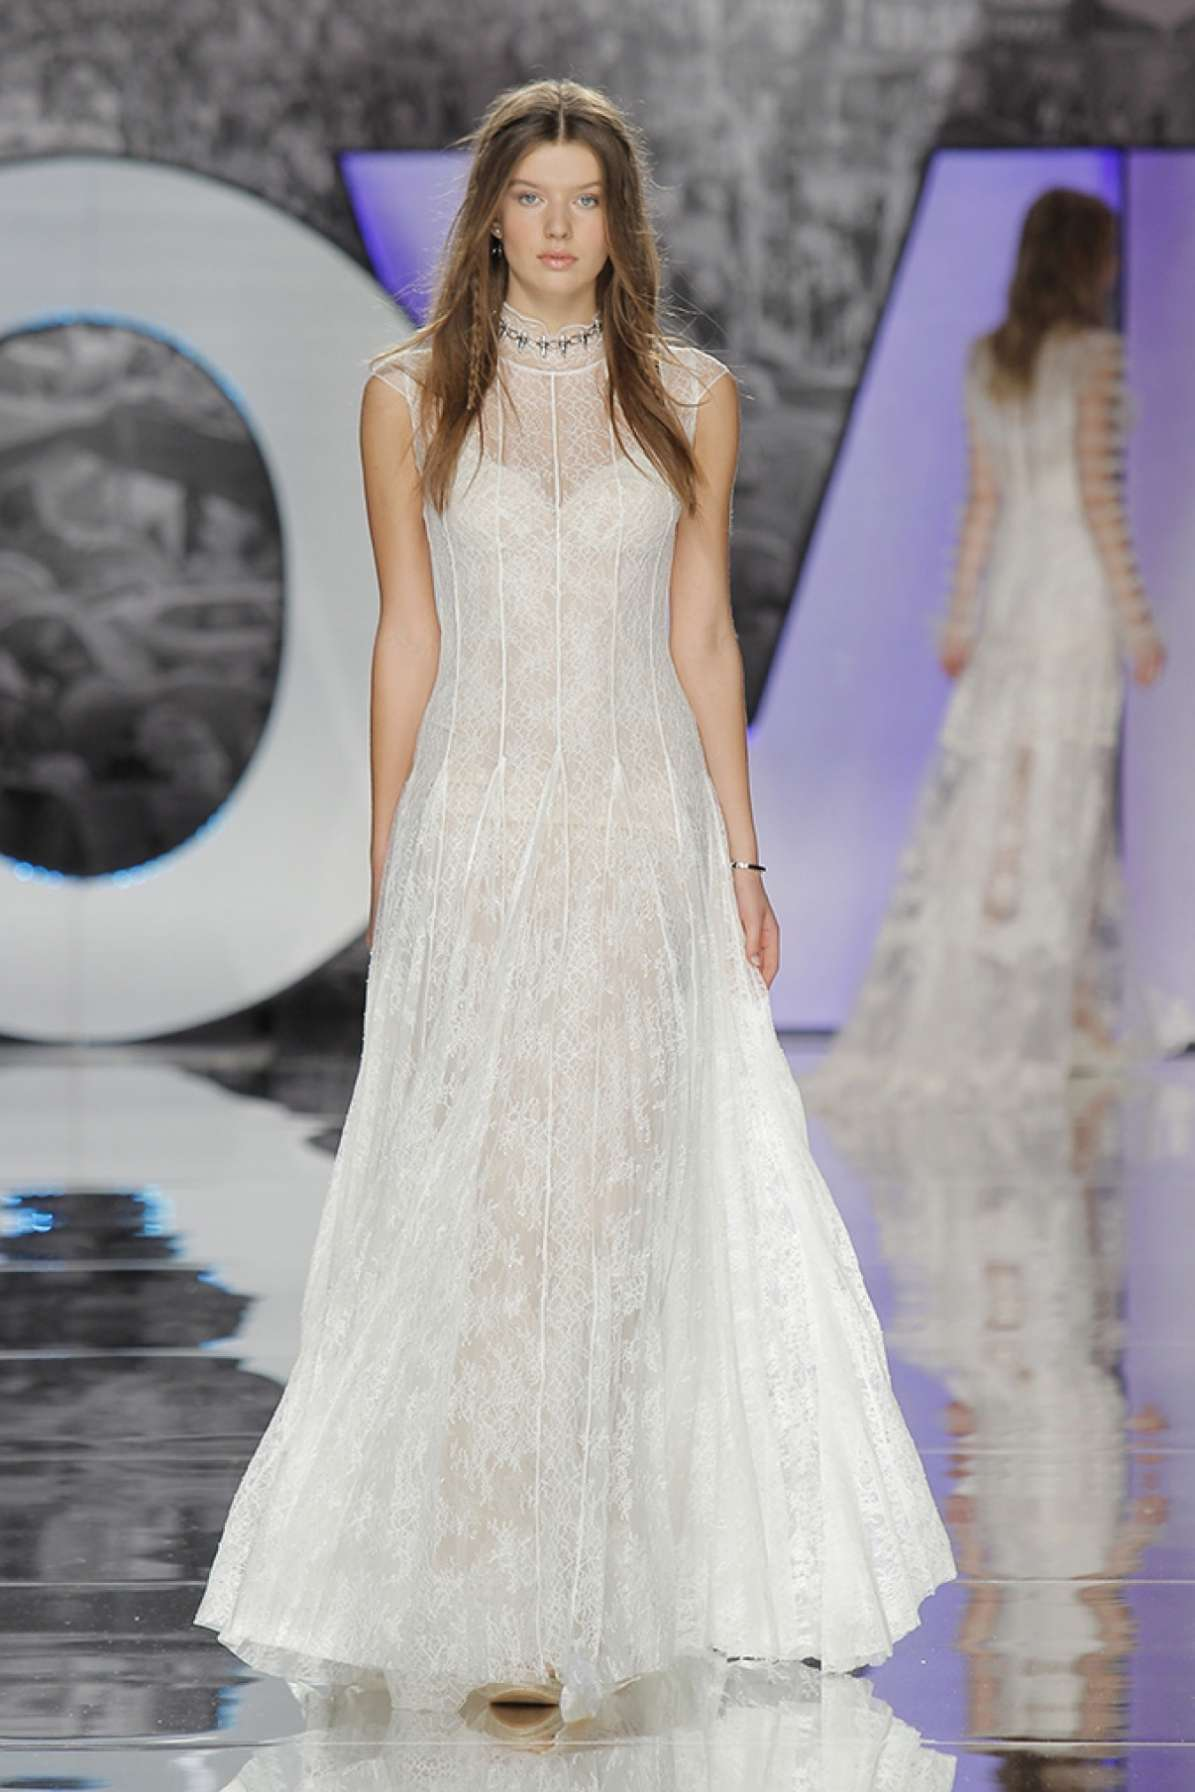 Cap Sleeve Full Lace Fit And Flare Wedding Dress | Kleinfeld Bridal